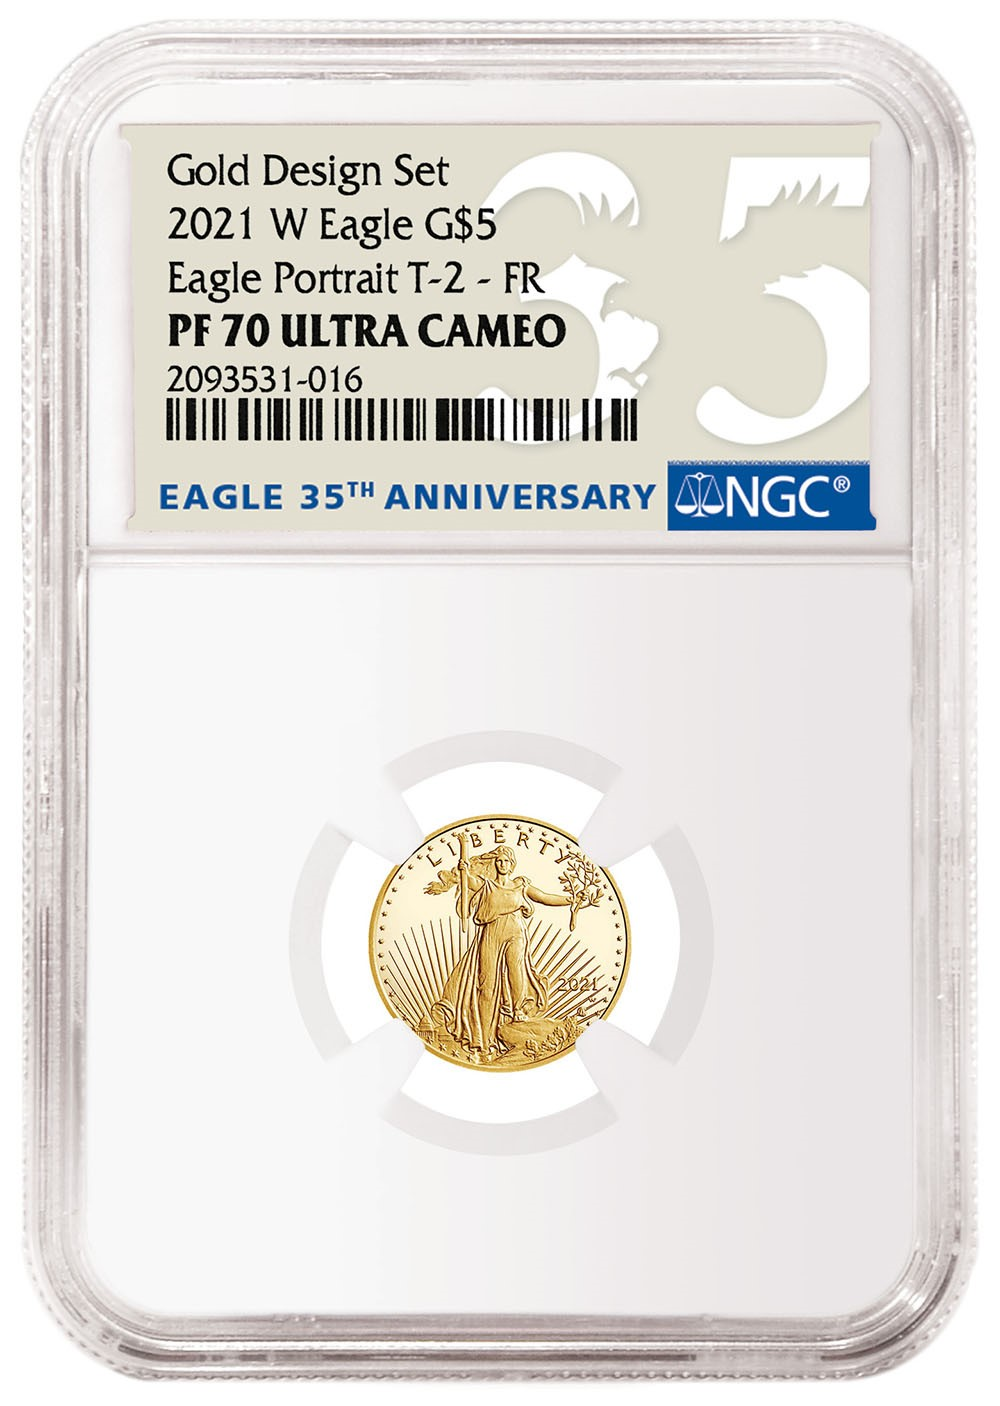 2021-W American Eagle Gold One-Tenth Ounce Type-2 (Image Courtesy of NGC)